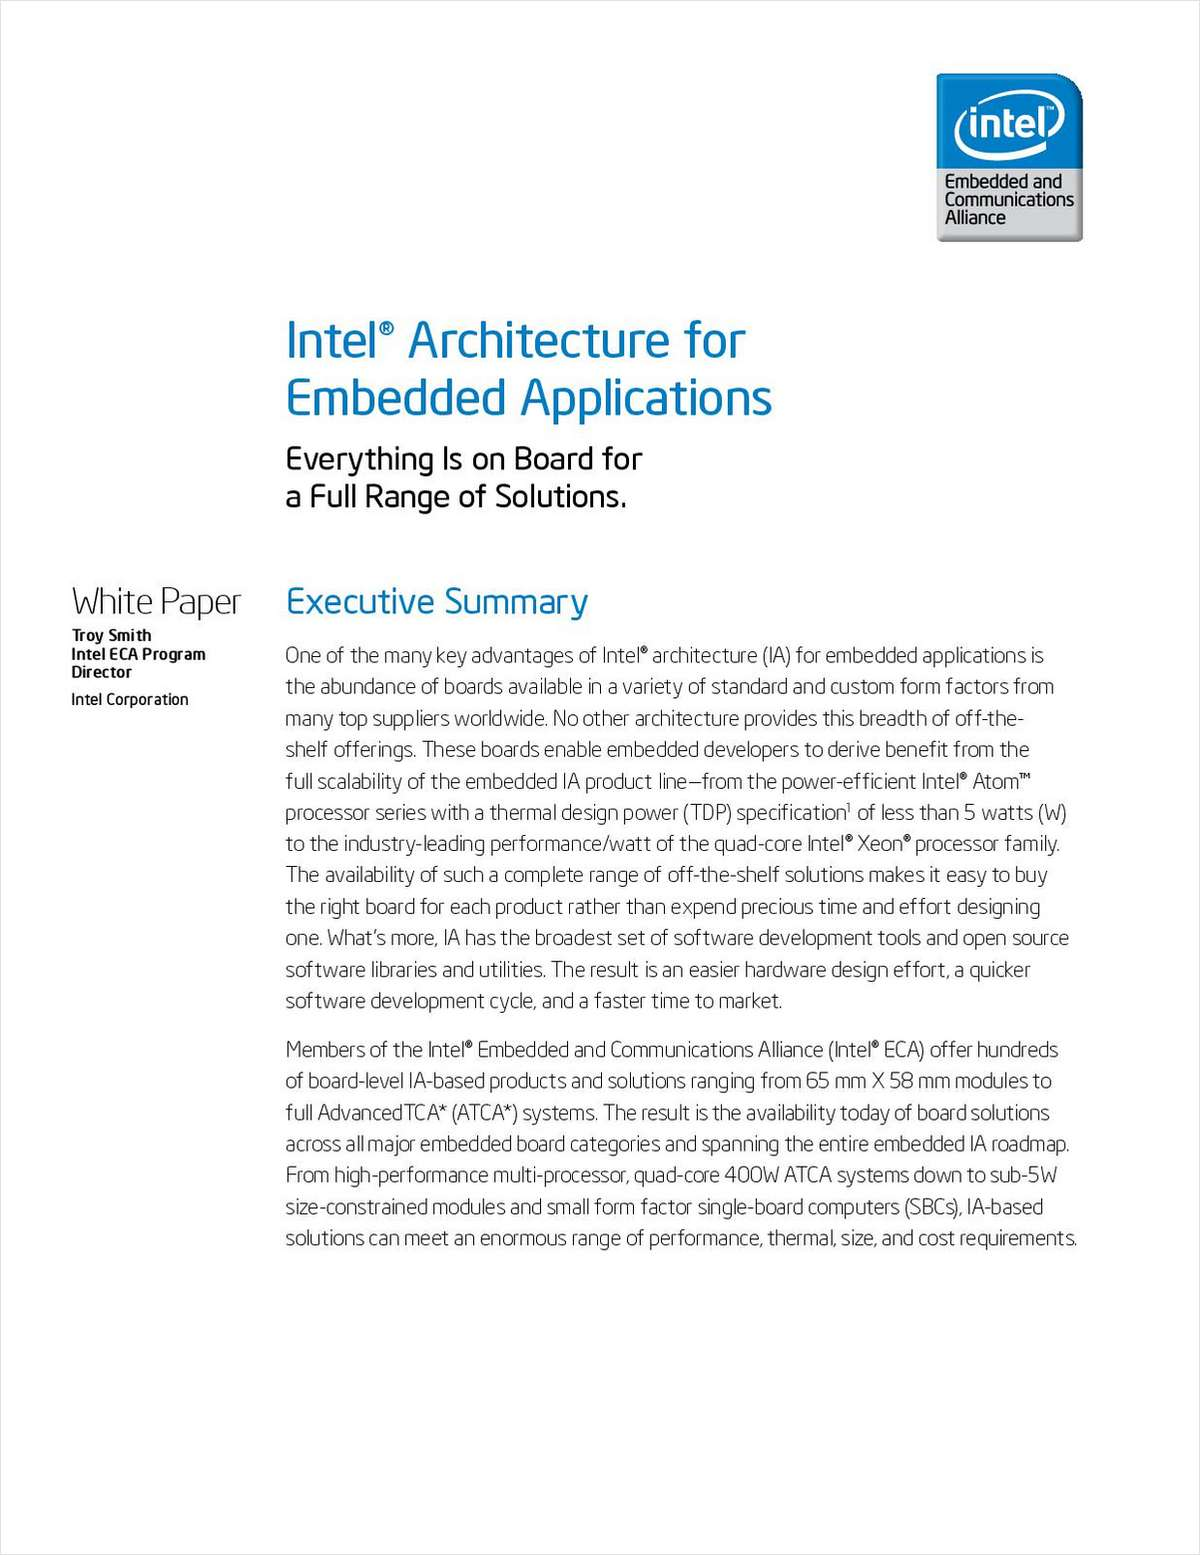 Why Intel® Architecture is Right for your Embedded Application